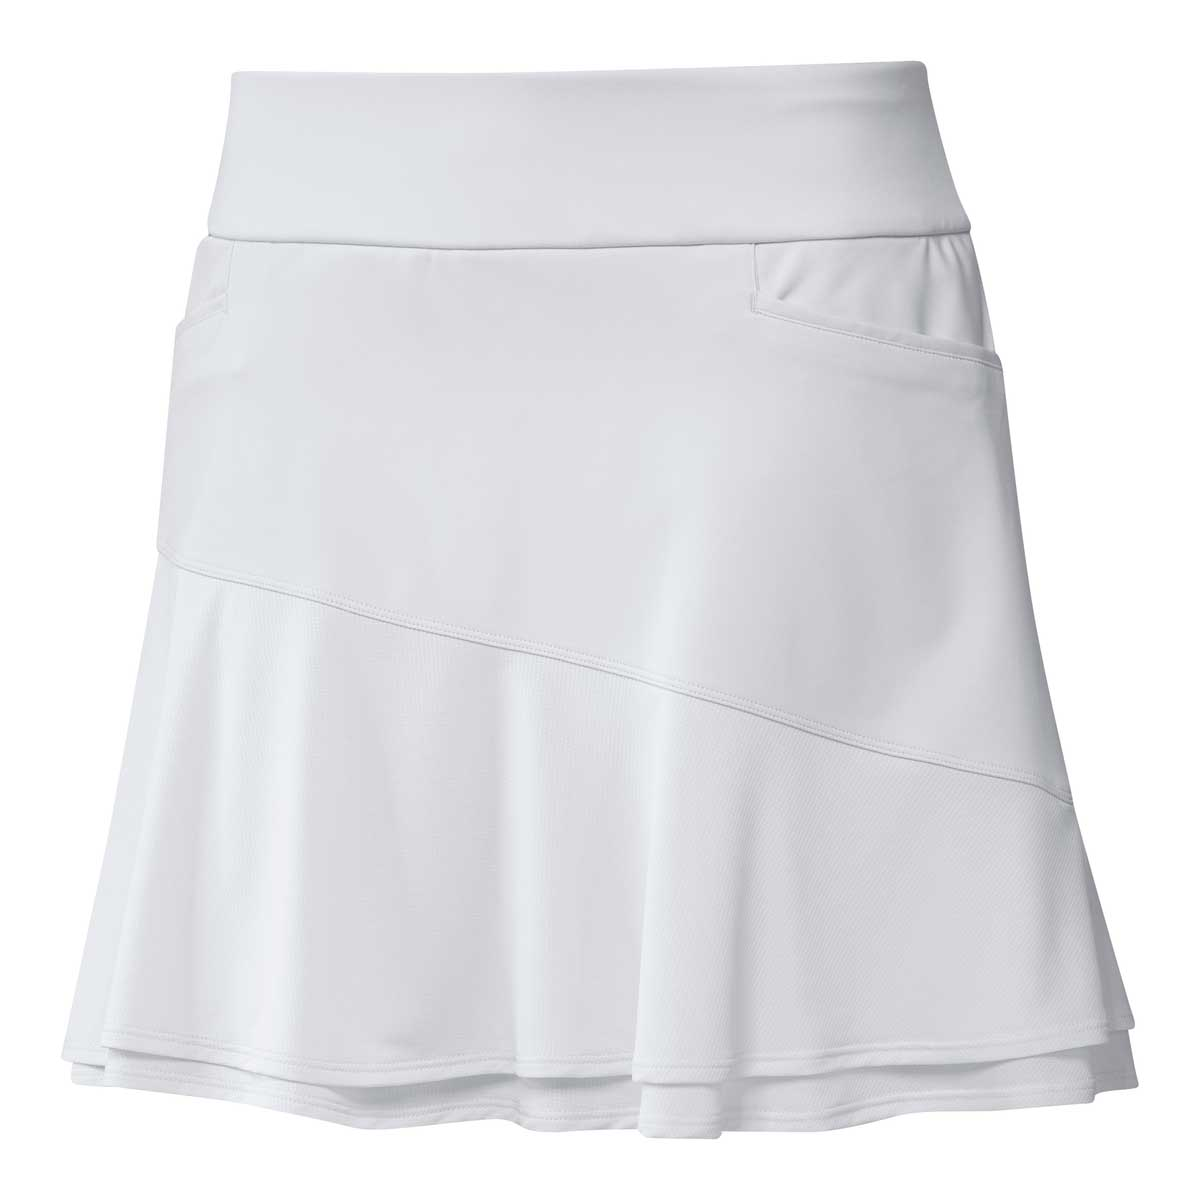 Adidas Women's Ultimate 365 16 Inch White Frill Skort